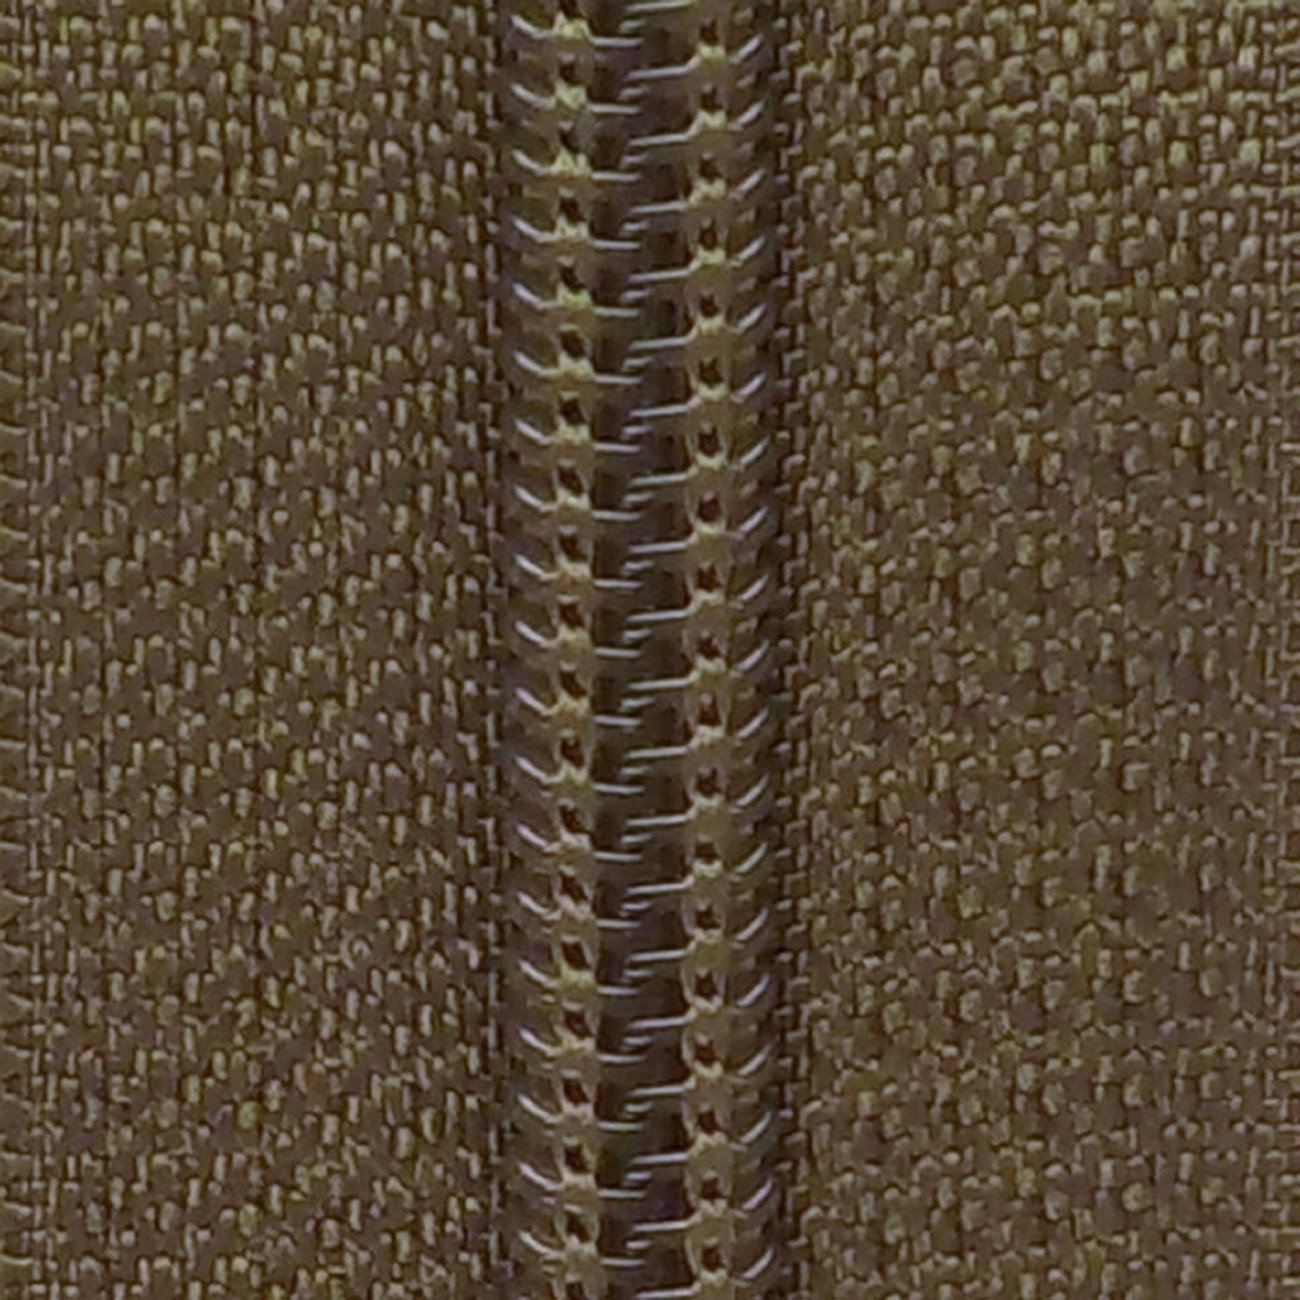 30 Double Pull Non Separating Zipper Olive Drab